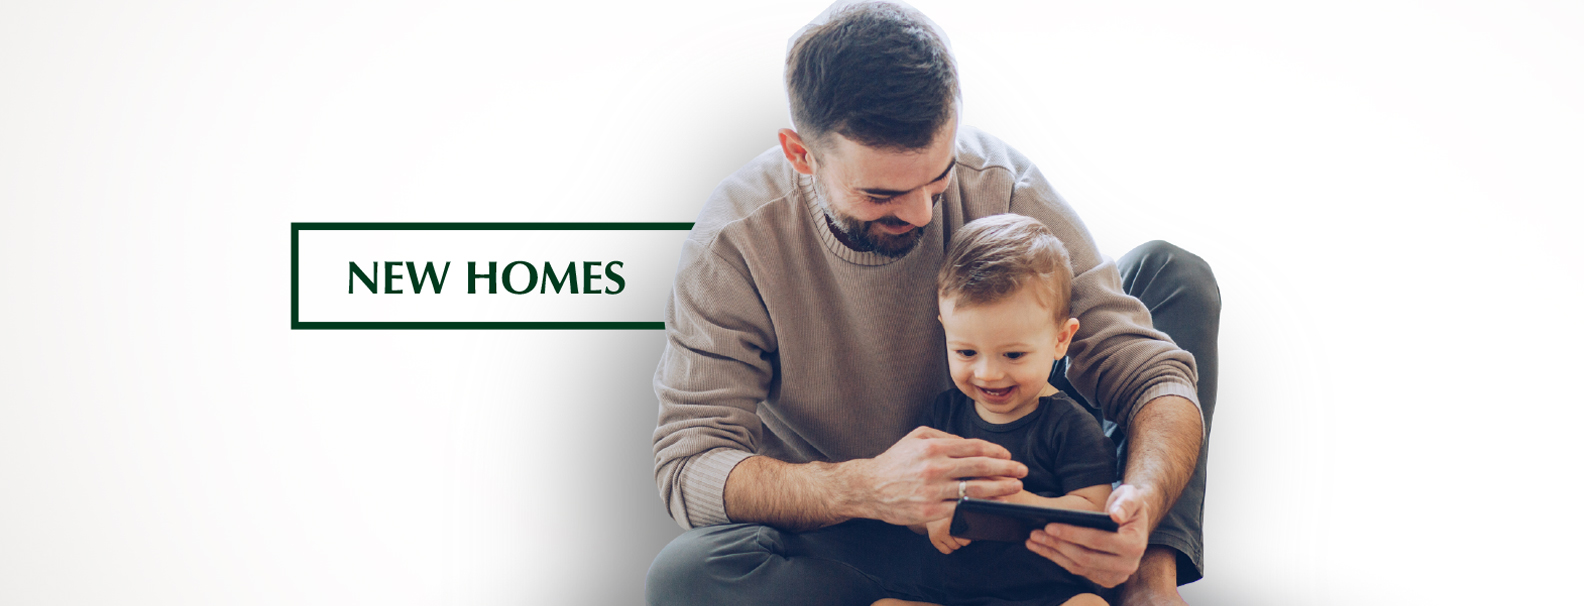 New Homes banner